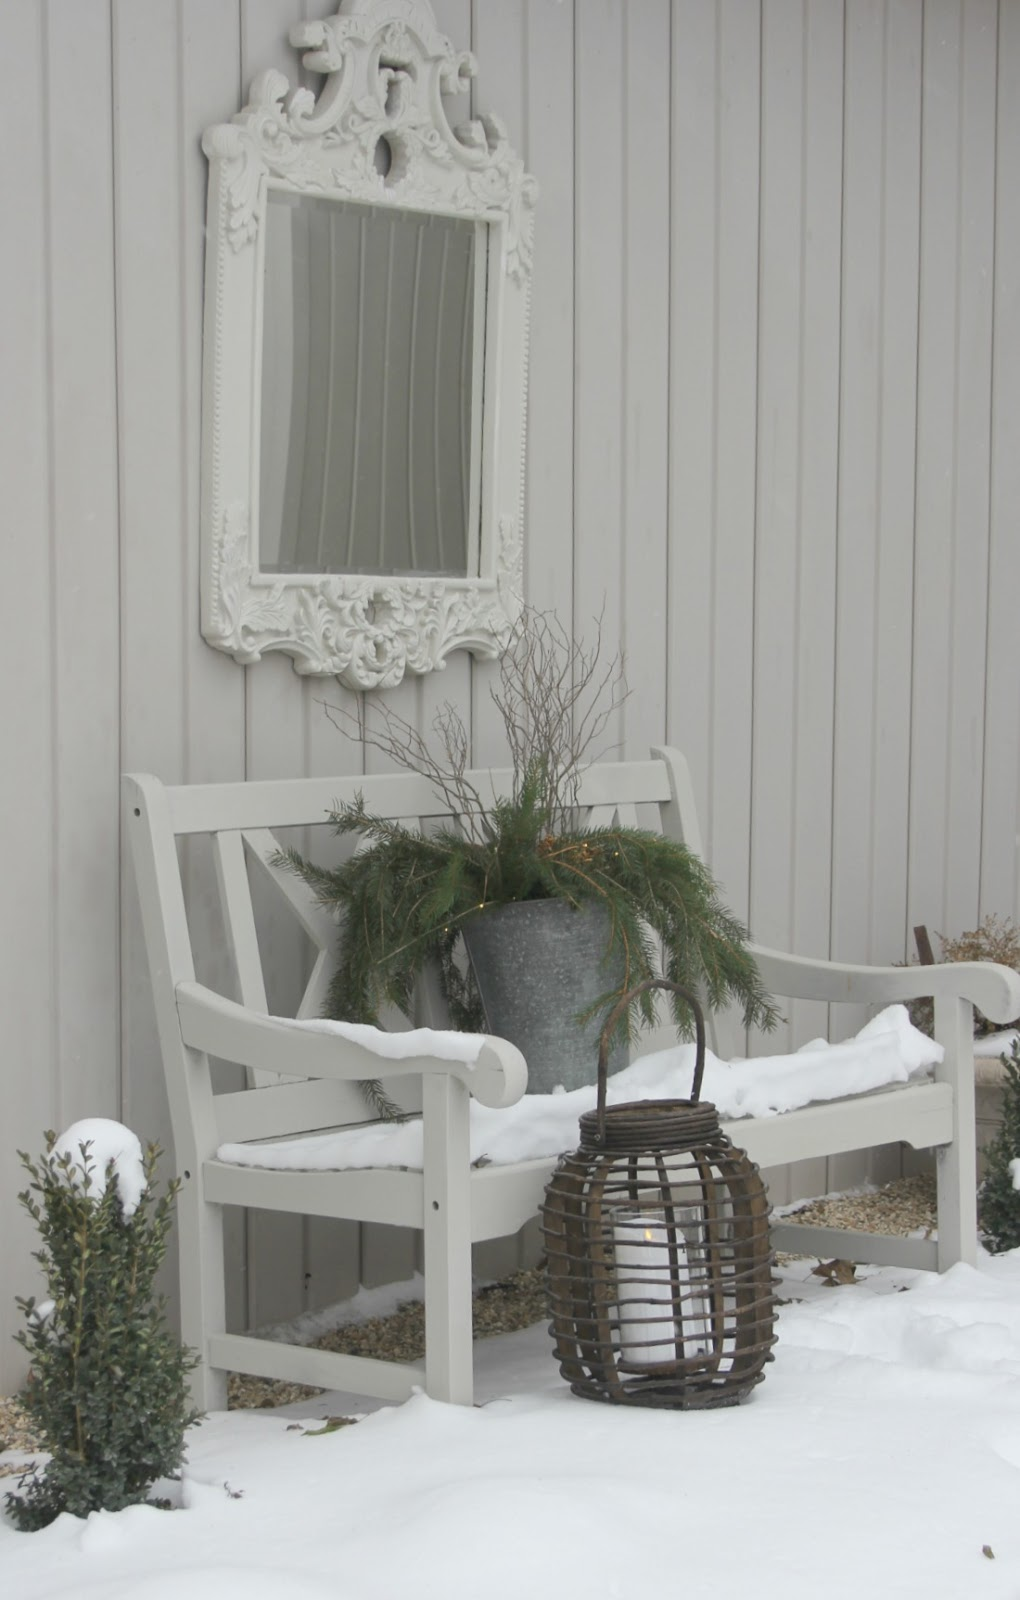 Serene white bench and mirror with winter holiday decor - Hello Lovely Studio. Come be calmed by How to Freak Less About Holidays, Decorating and Gifts as well as Entertaining.